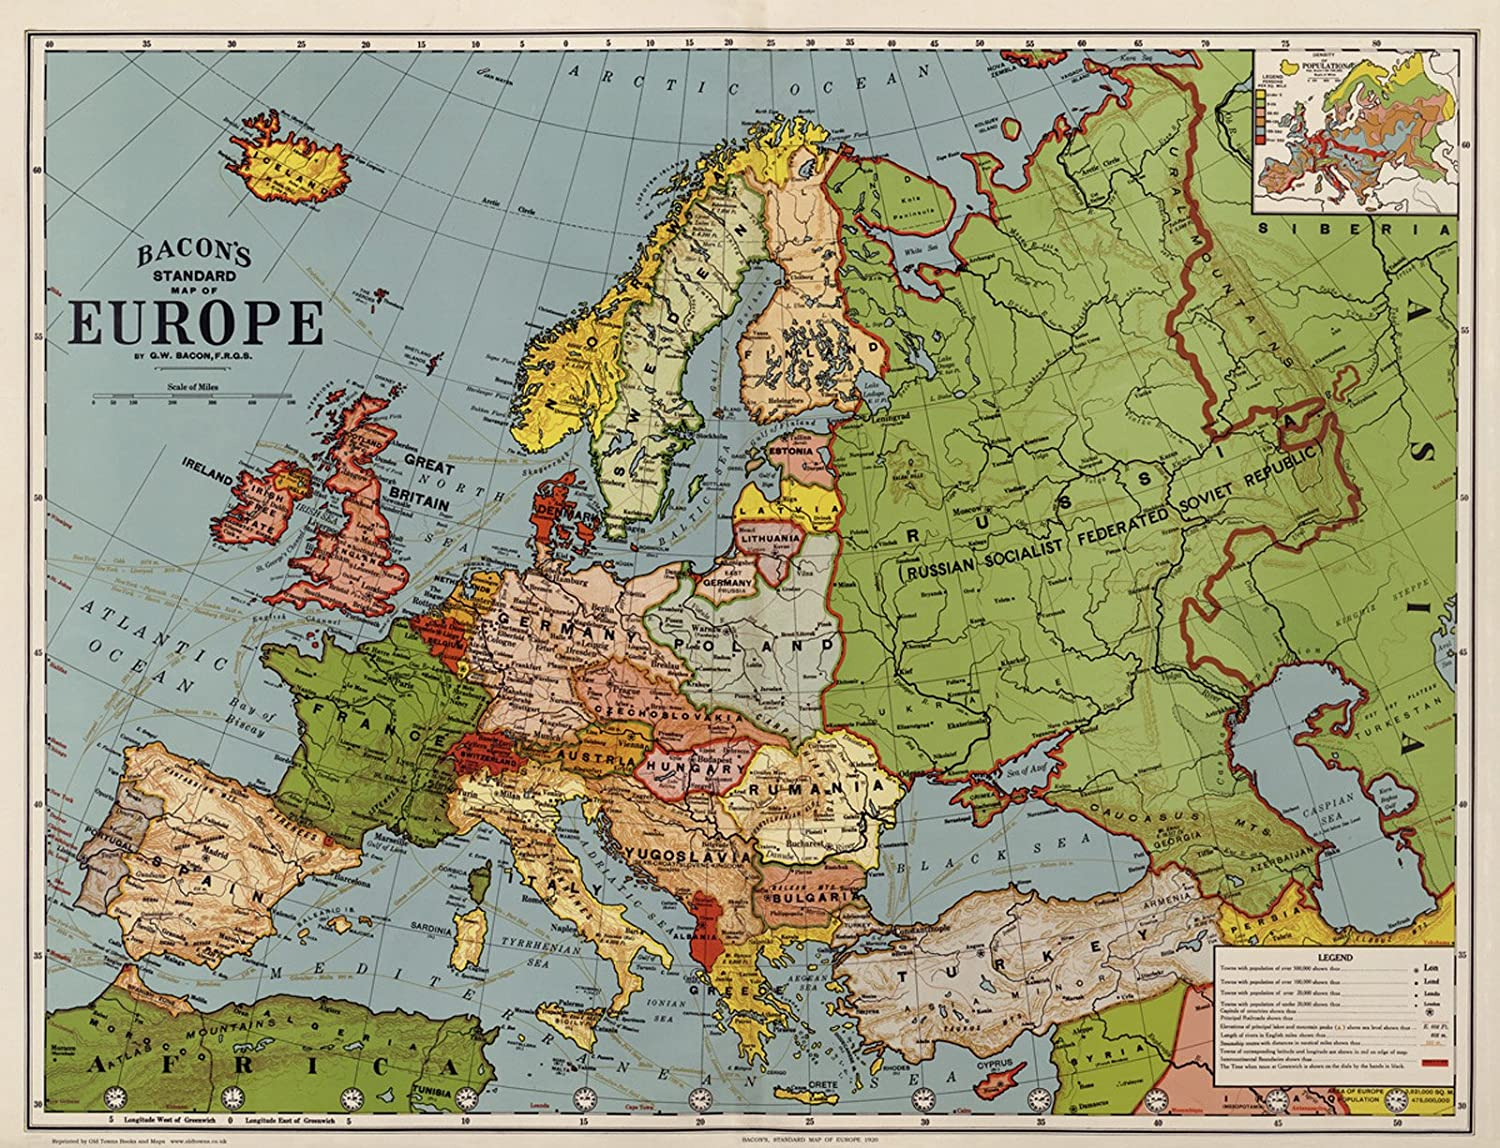 Old Map of Europe in 1920 (76x58cm) by GW Bacon - Reprint